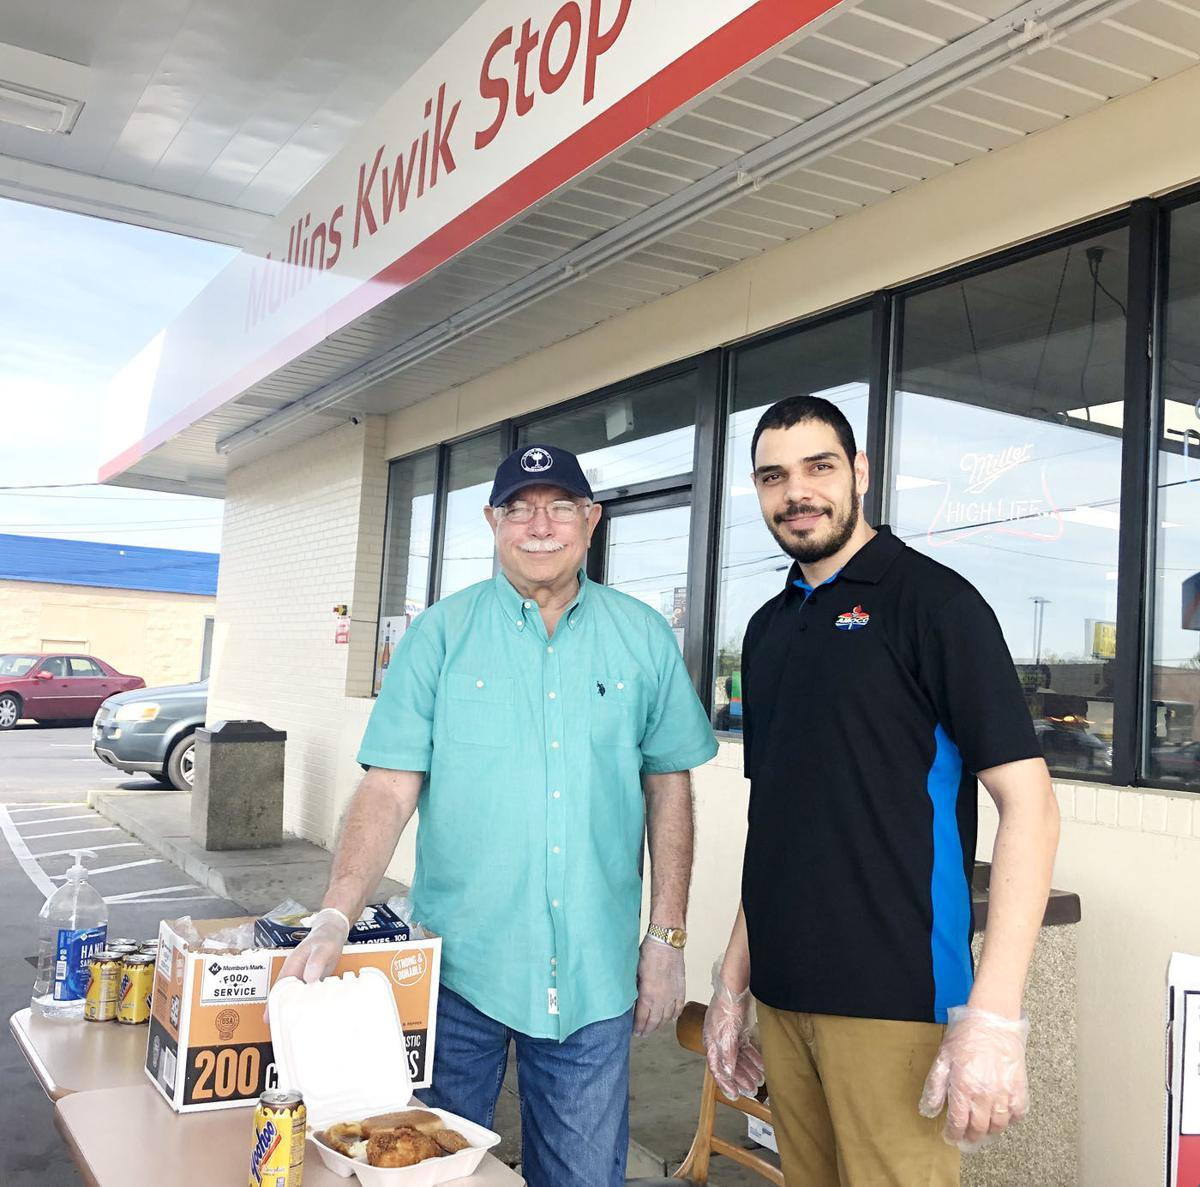 Local restaurants are transitioning from dine-in to carry-out orders